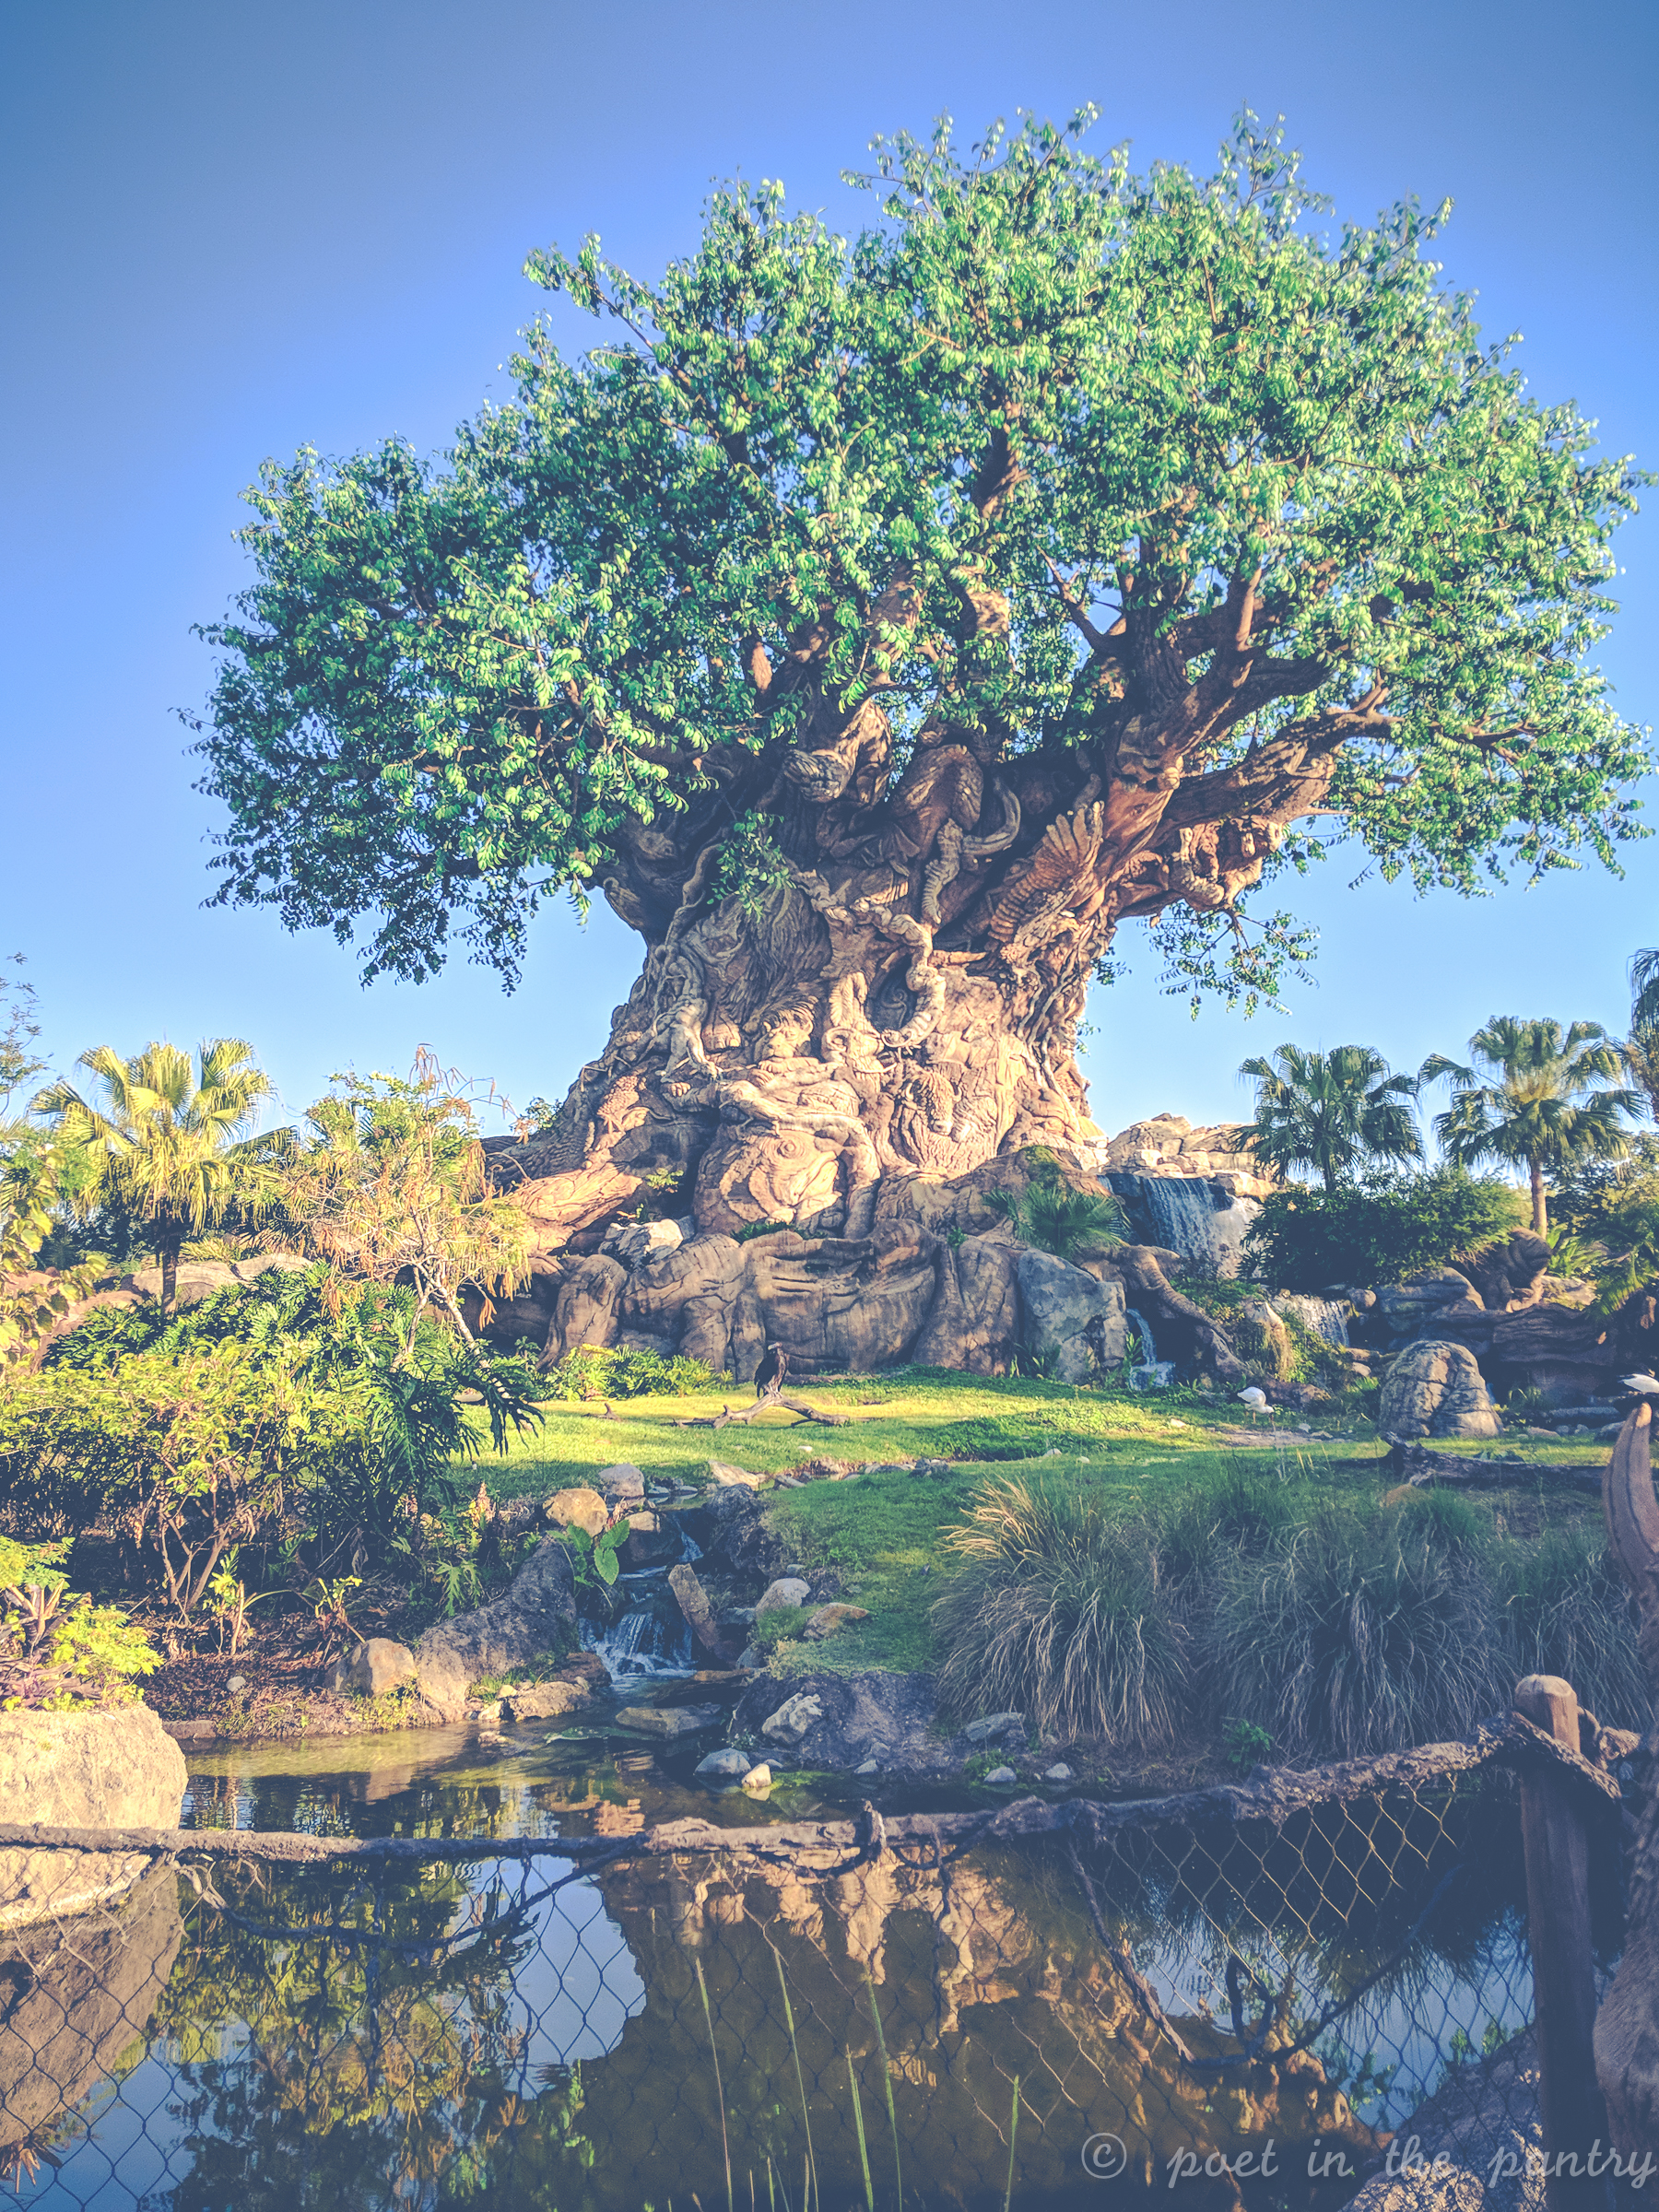 5 Ways to Make The Most of Disney's Animal Kingdom - Poet ...